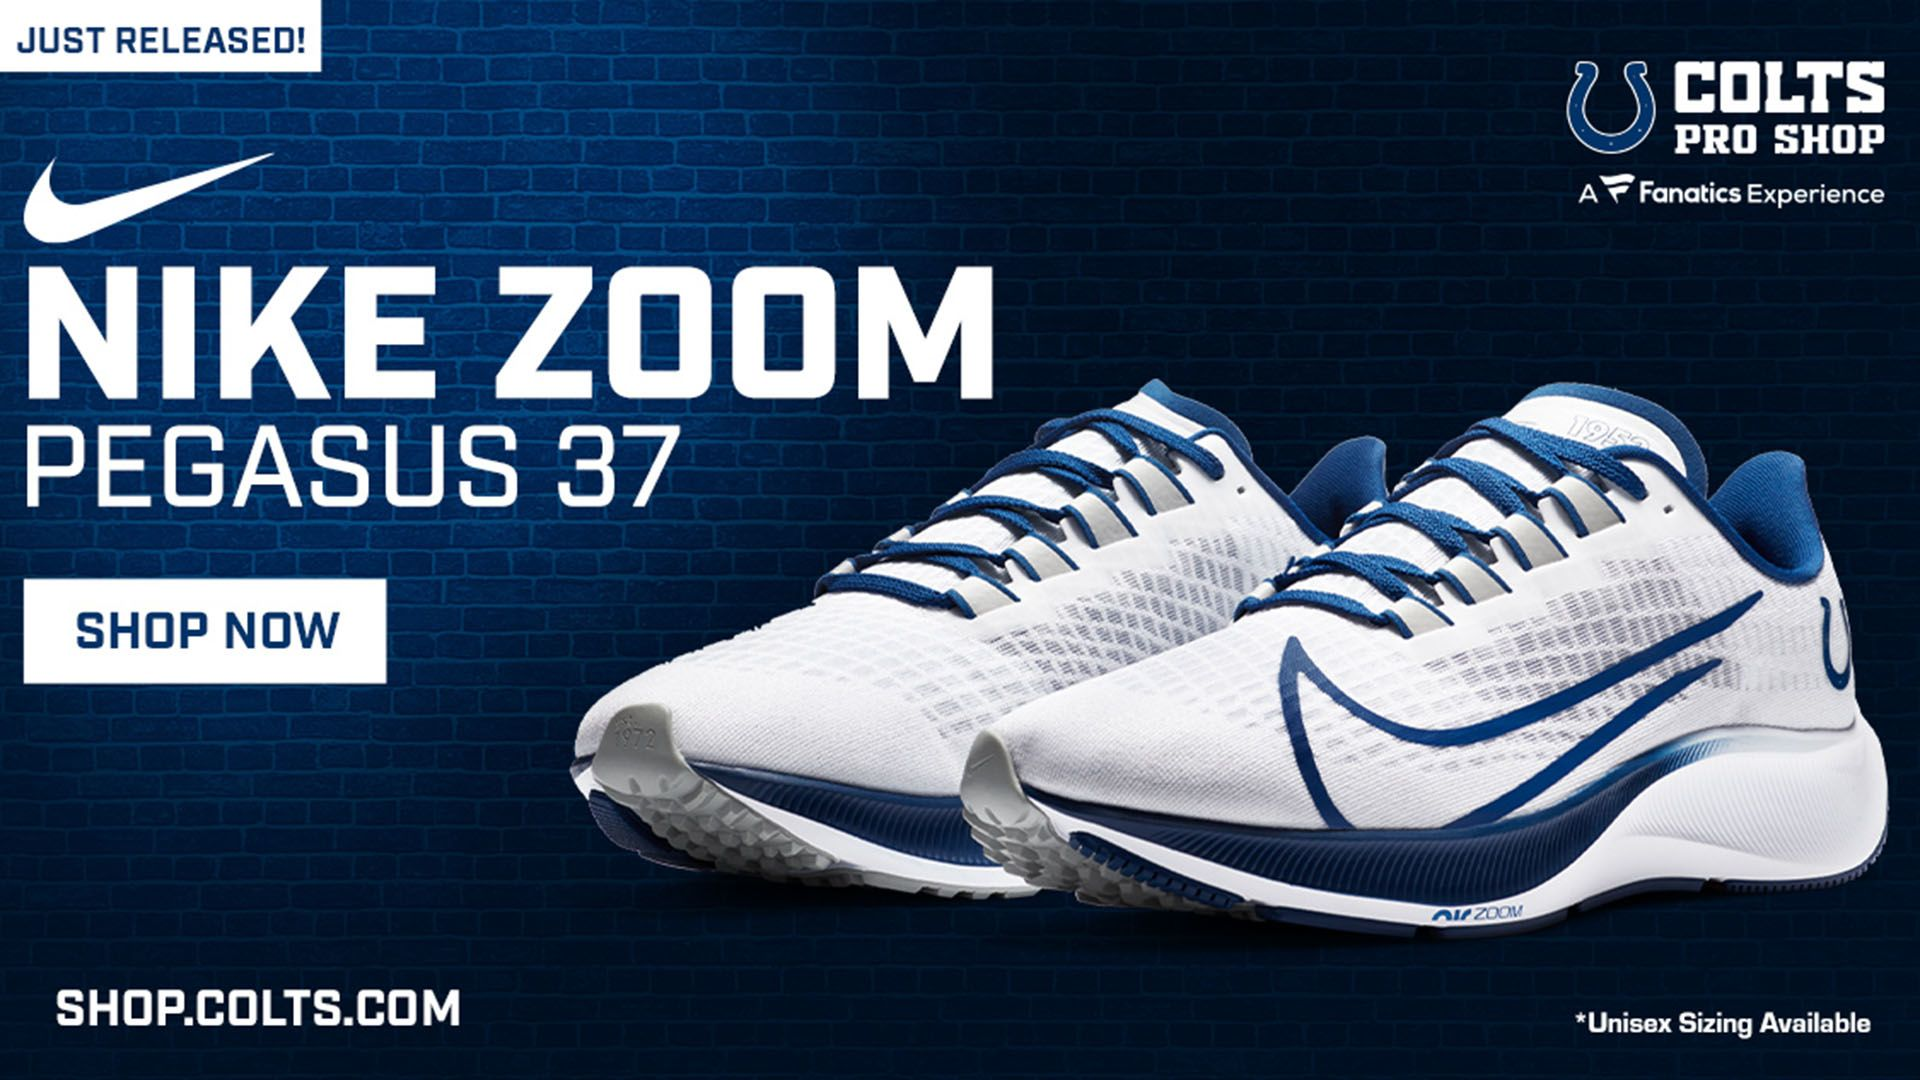 NEW Colts Nike Shoes